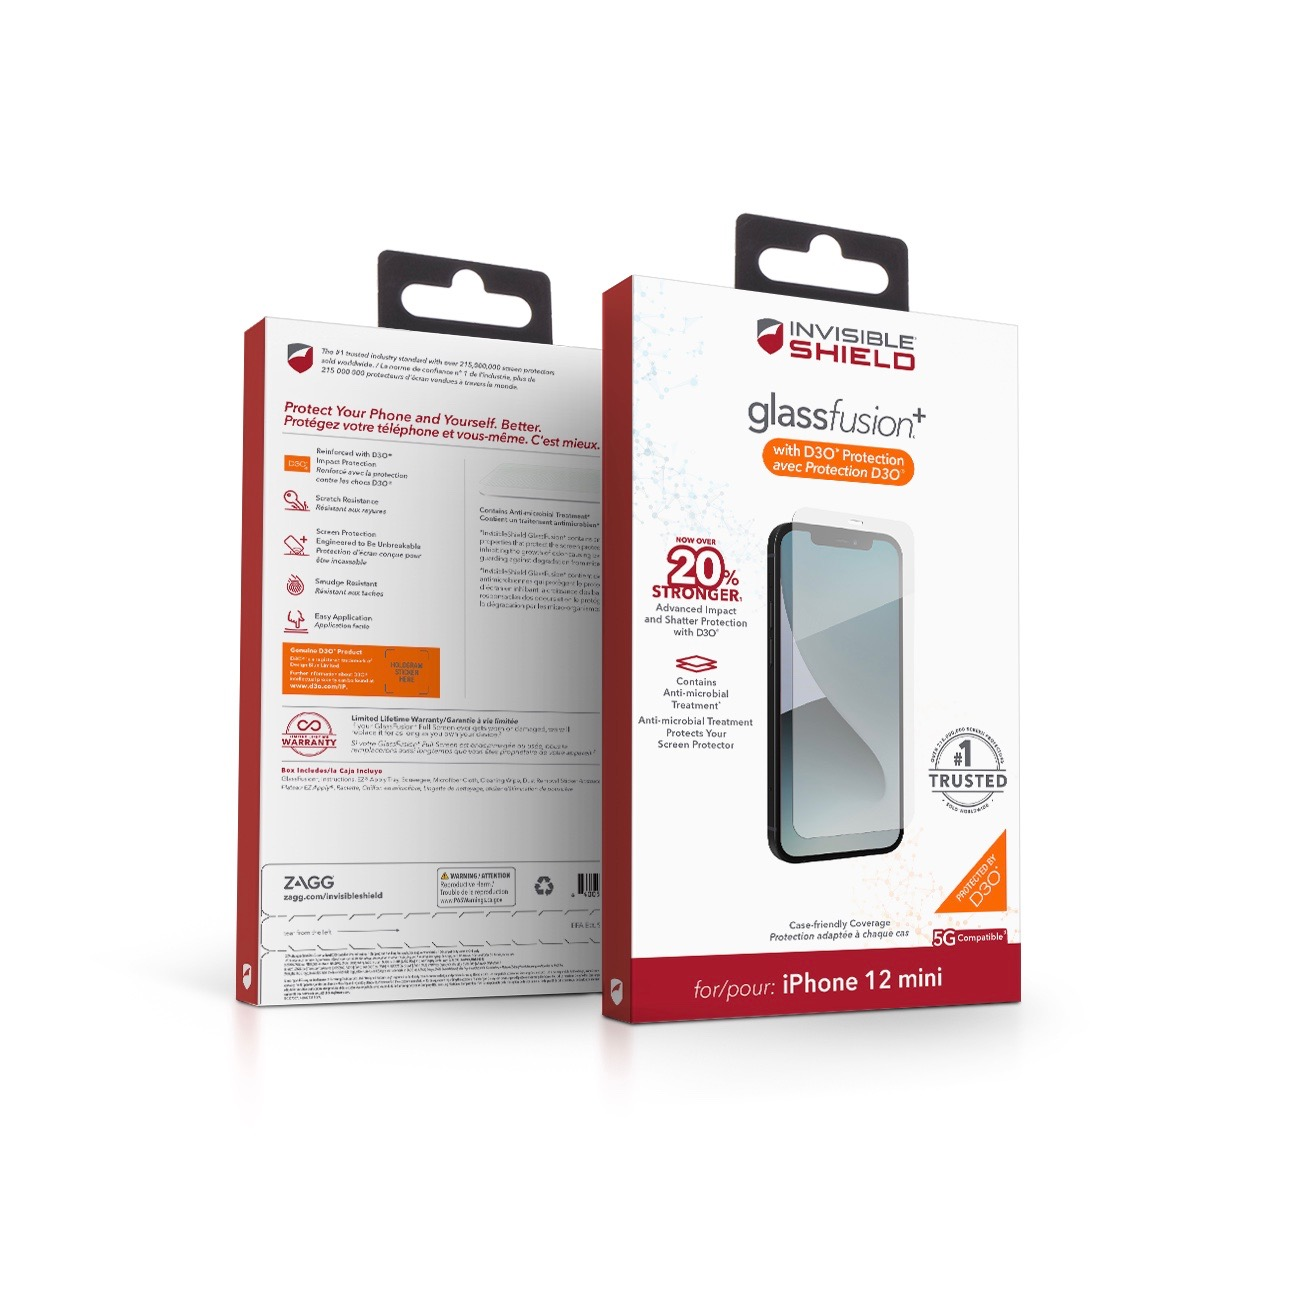 Glass Fusion Screen Protector